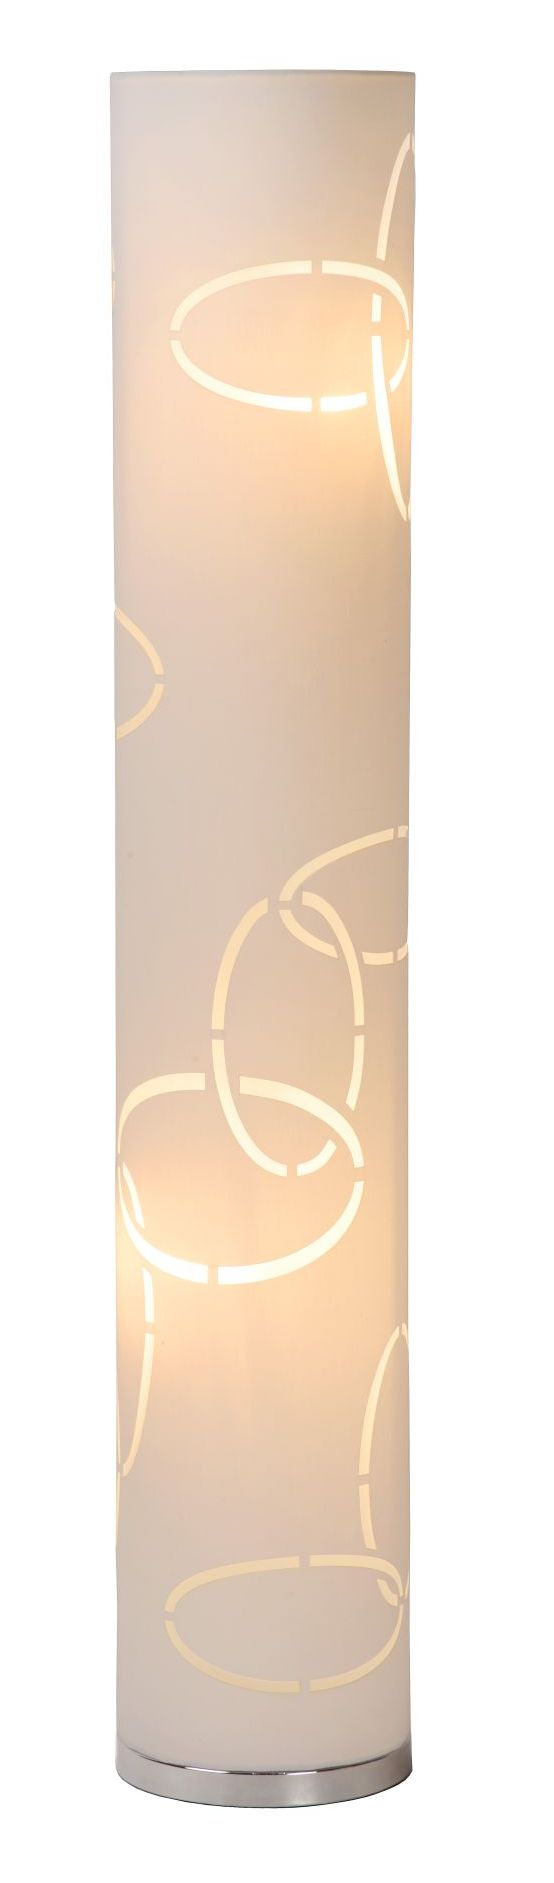 Standing lamp VERANO white fabric E14